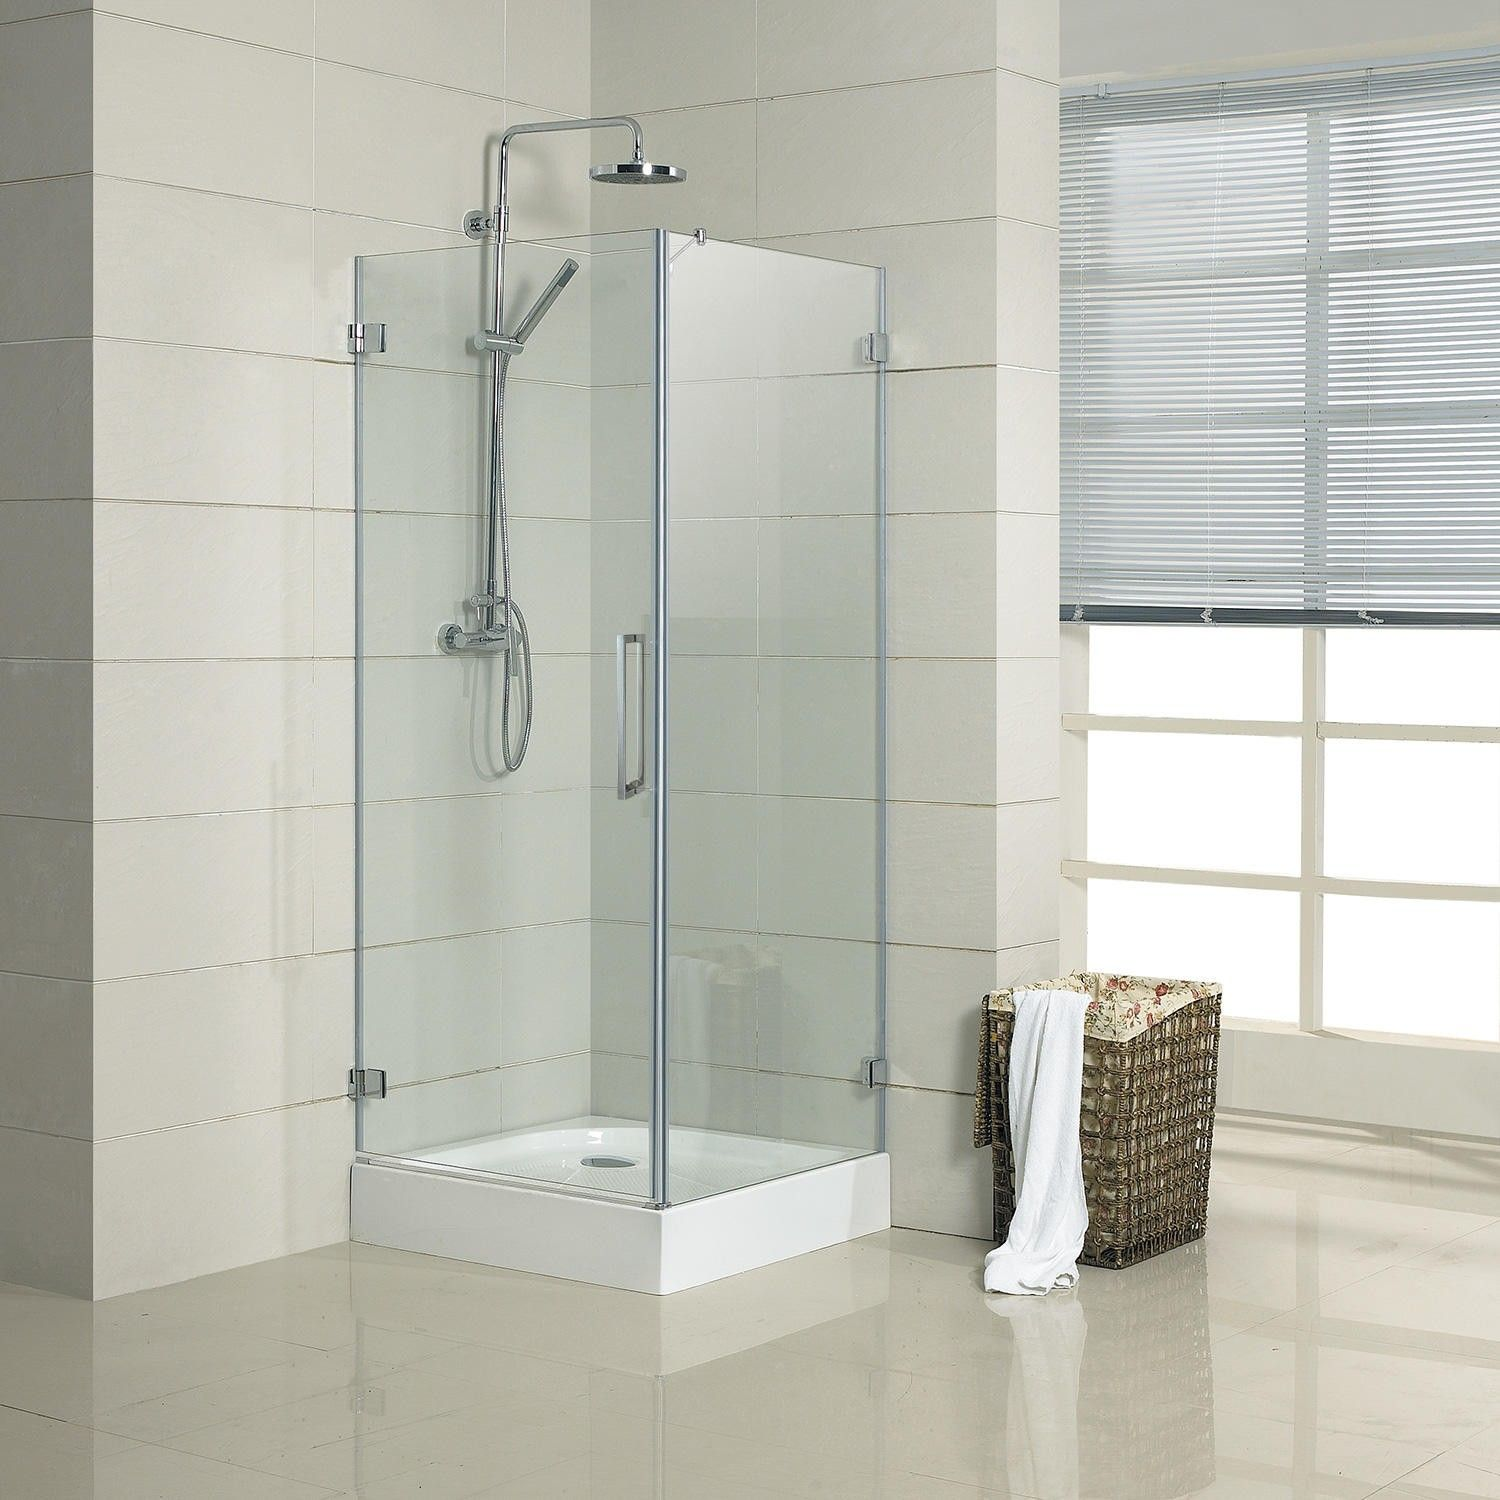 Really narrow shower enclosure... wonder if this would work within ...